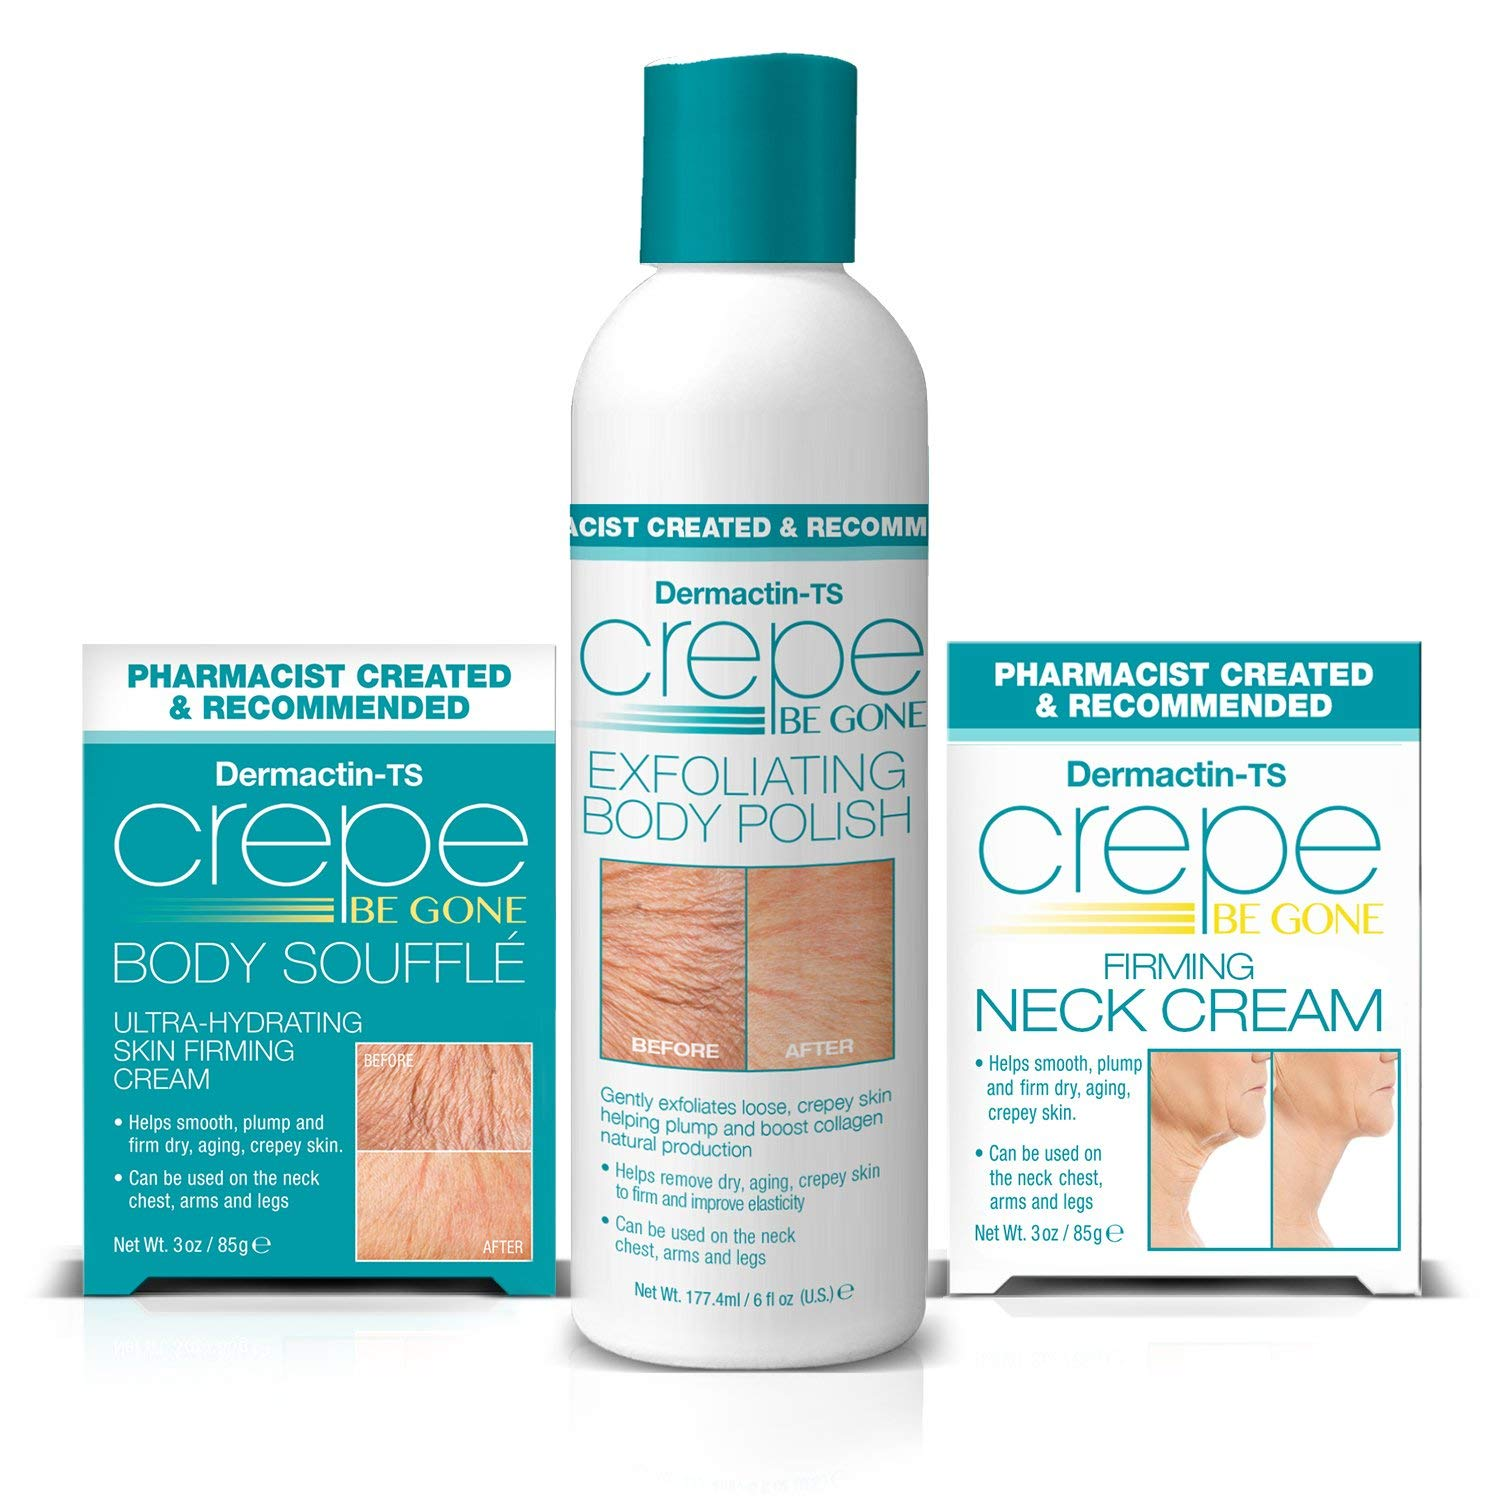 Dermactin-TS Crepe Be Gone 3-Piece Kit - Includes Body Souffle Neck Cream and Body Polish